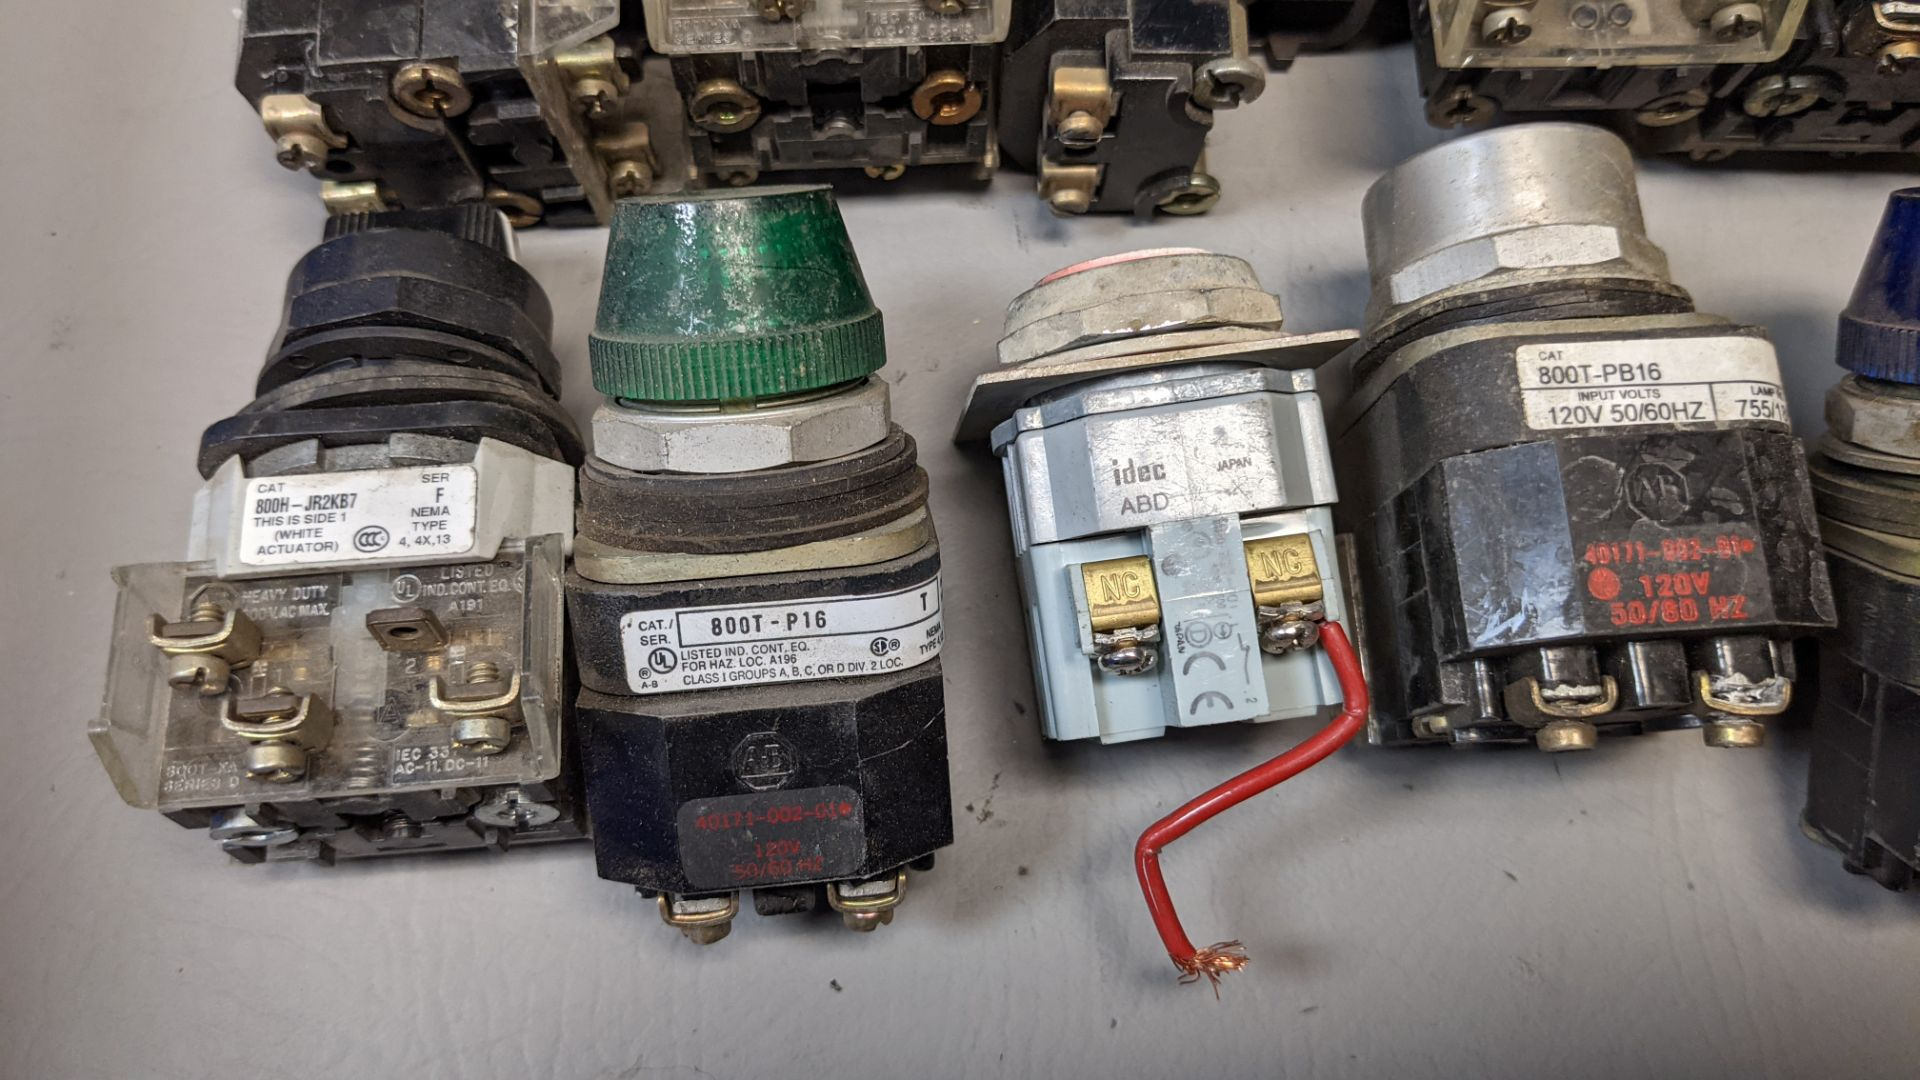 LOT OF PUSHBUTTONS, PILOT LIGHTS, SELECTOR SWITCHES - Image 3 of 7